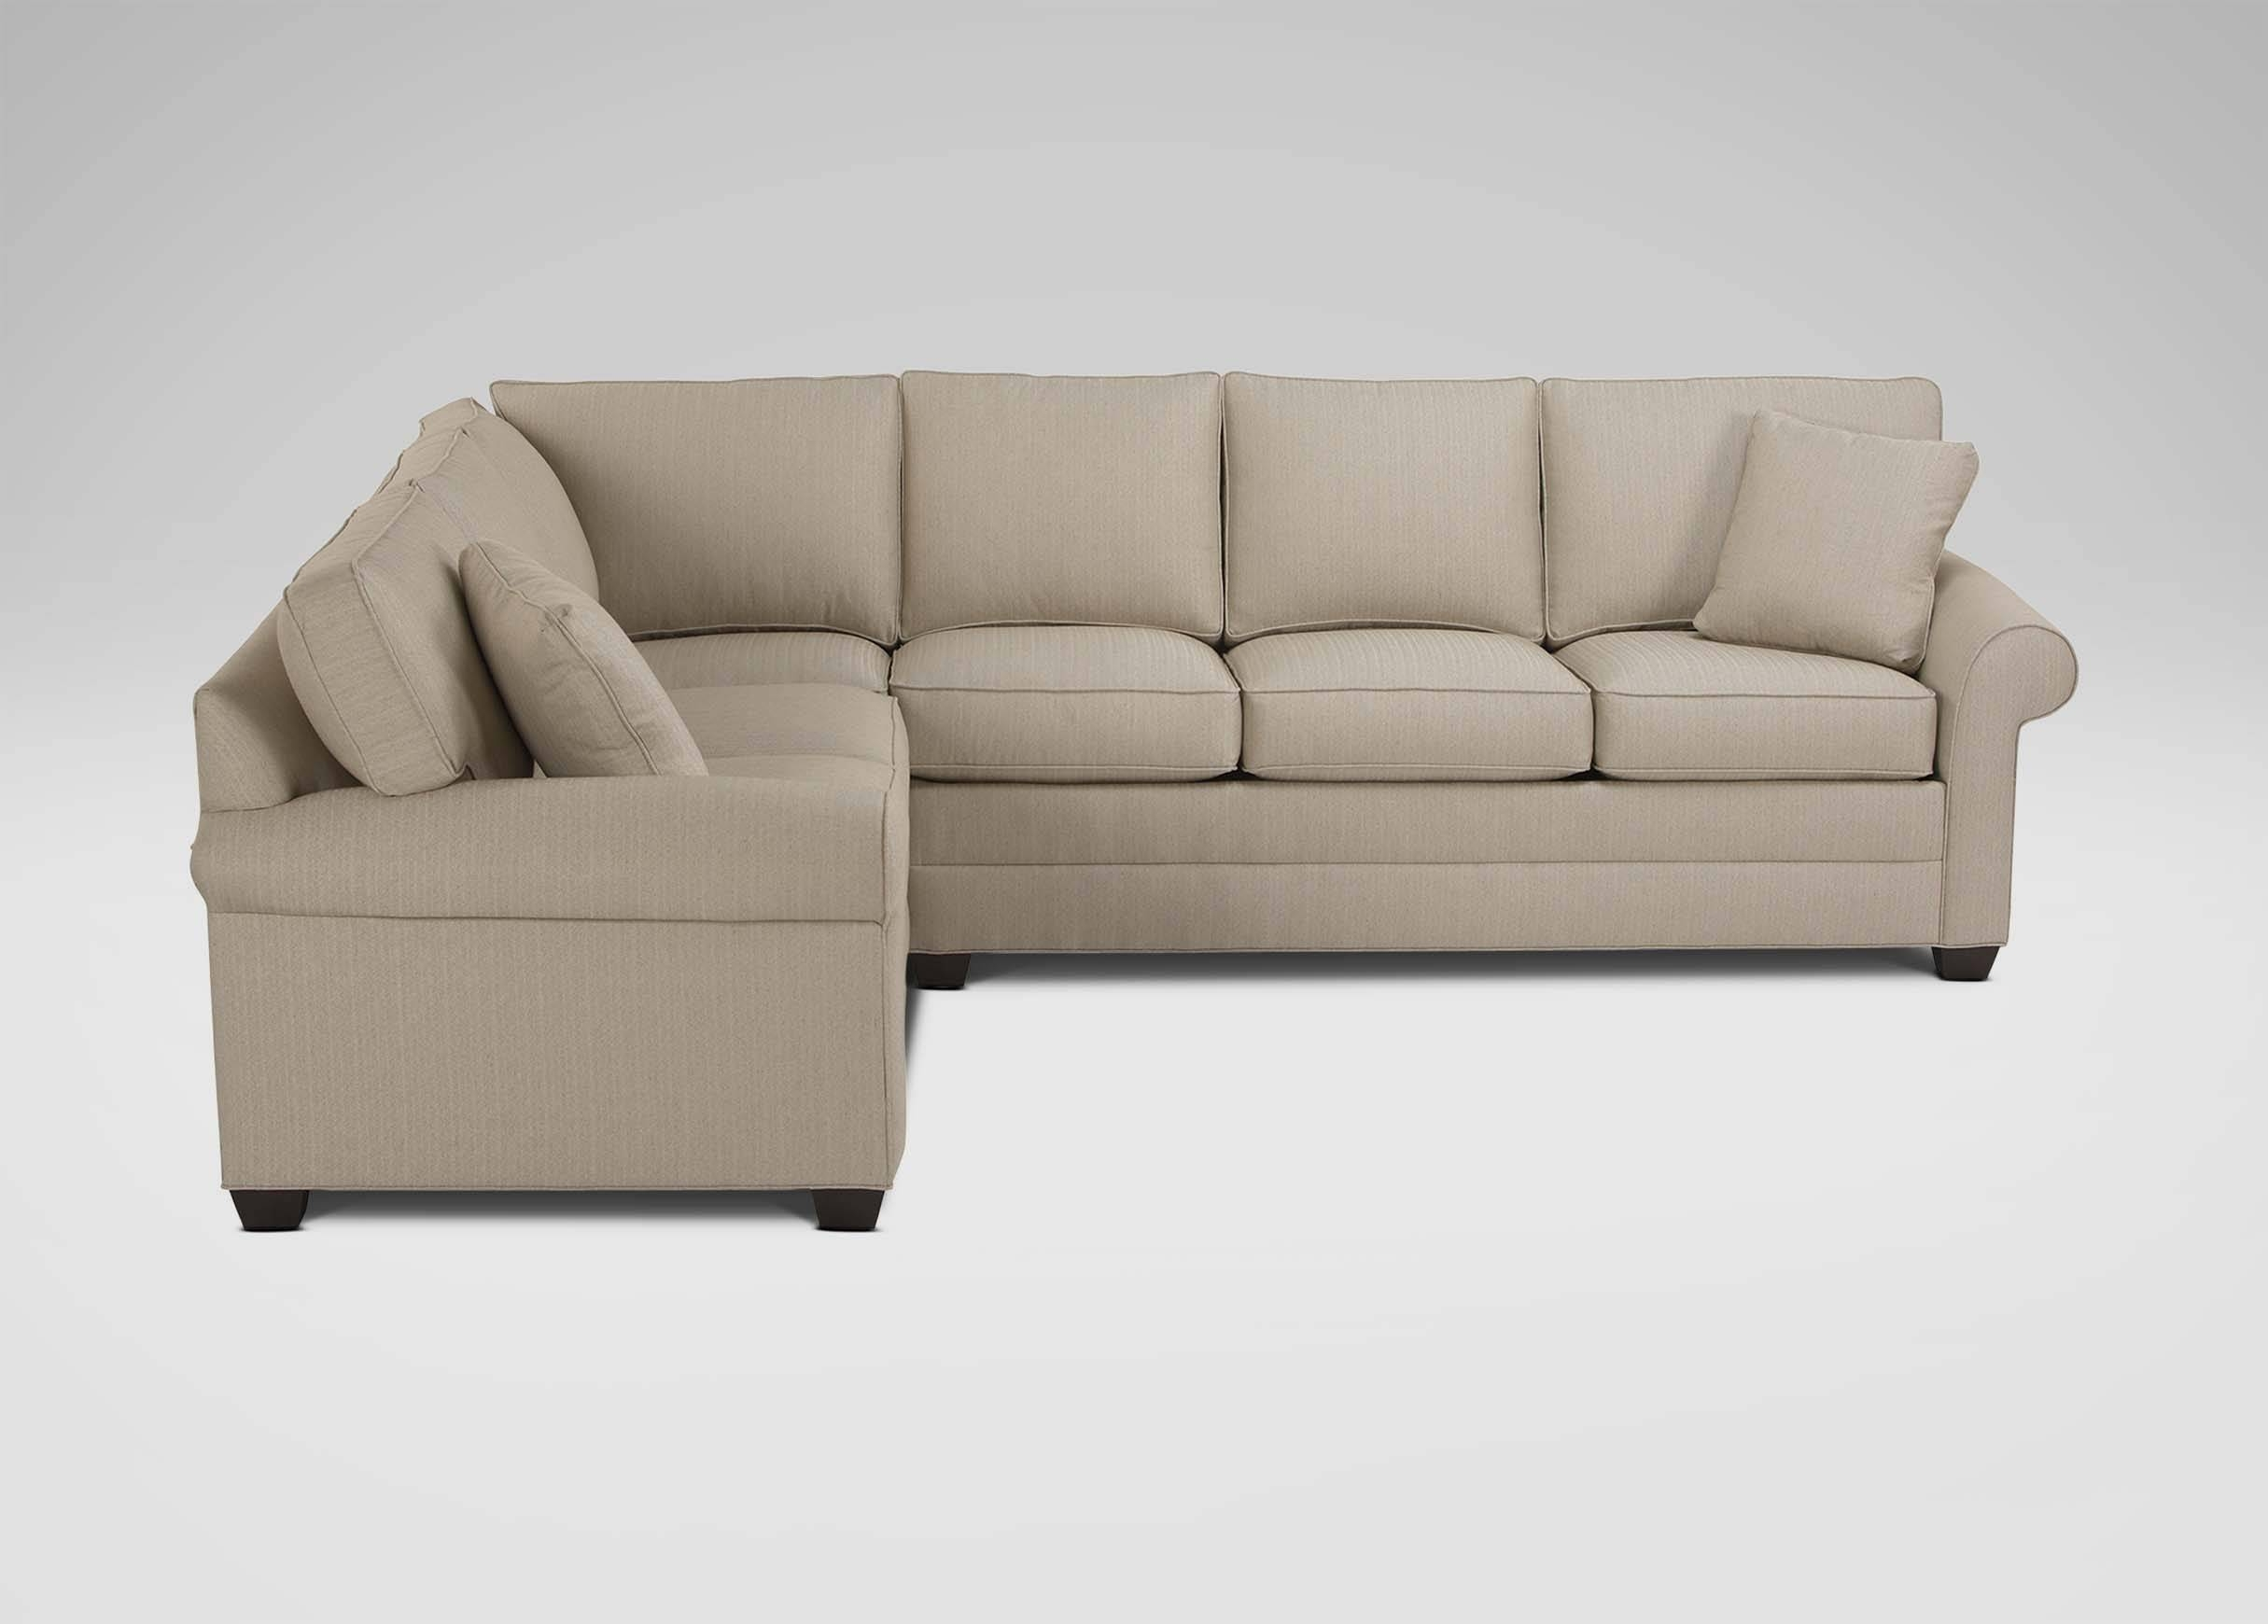 Bennett Roll Arm Sectional | Sectionals For Ethan Allen Sectional Sofas (View 4 of 15)